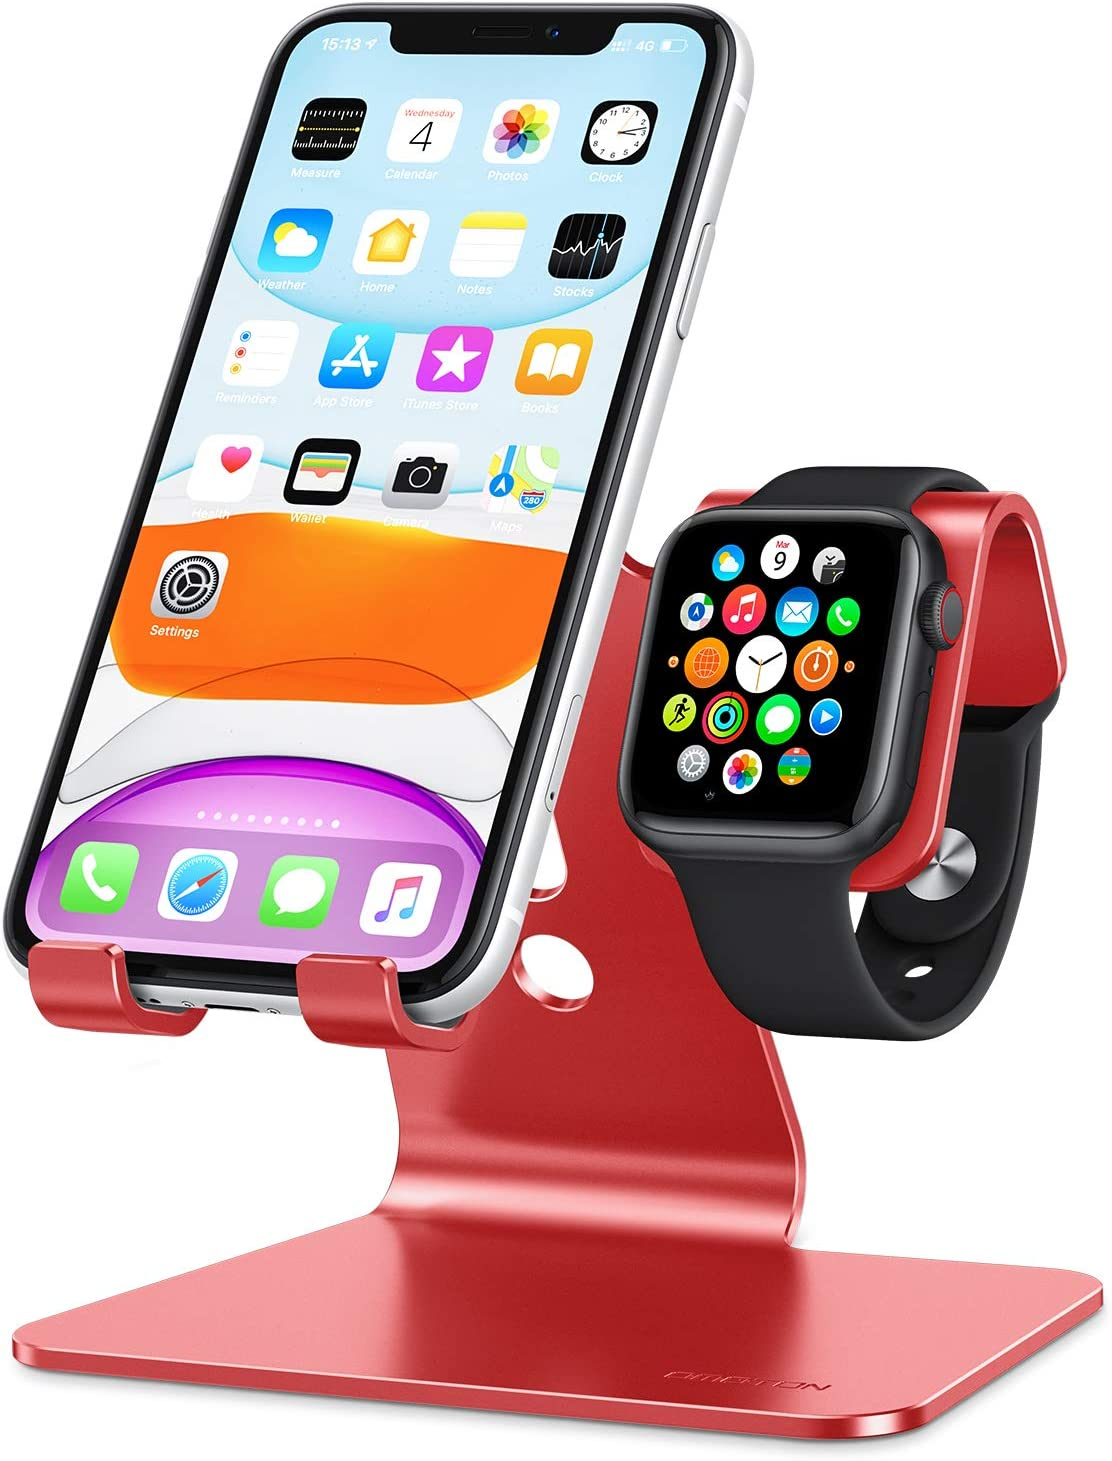 Apple Watch Stand, OMOTON 2 in 1 Universal Desktop Stand Holder for iPhone and Apple Watch Series 5/4/3/2/1 (Both 38mm/40mm/42mm/44mm) (Red)